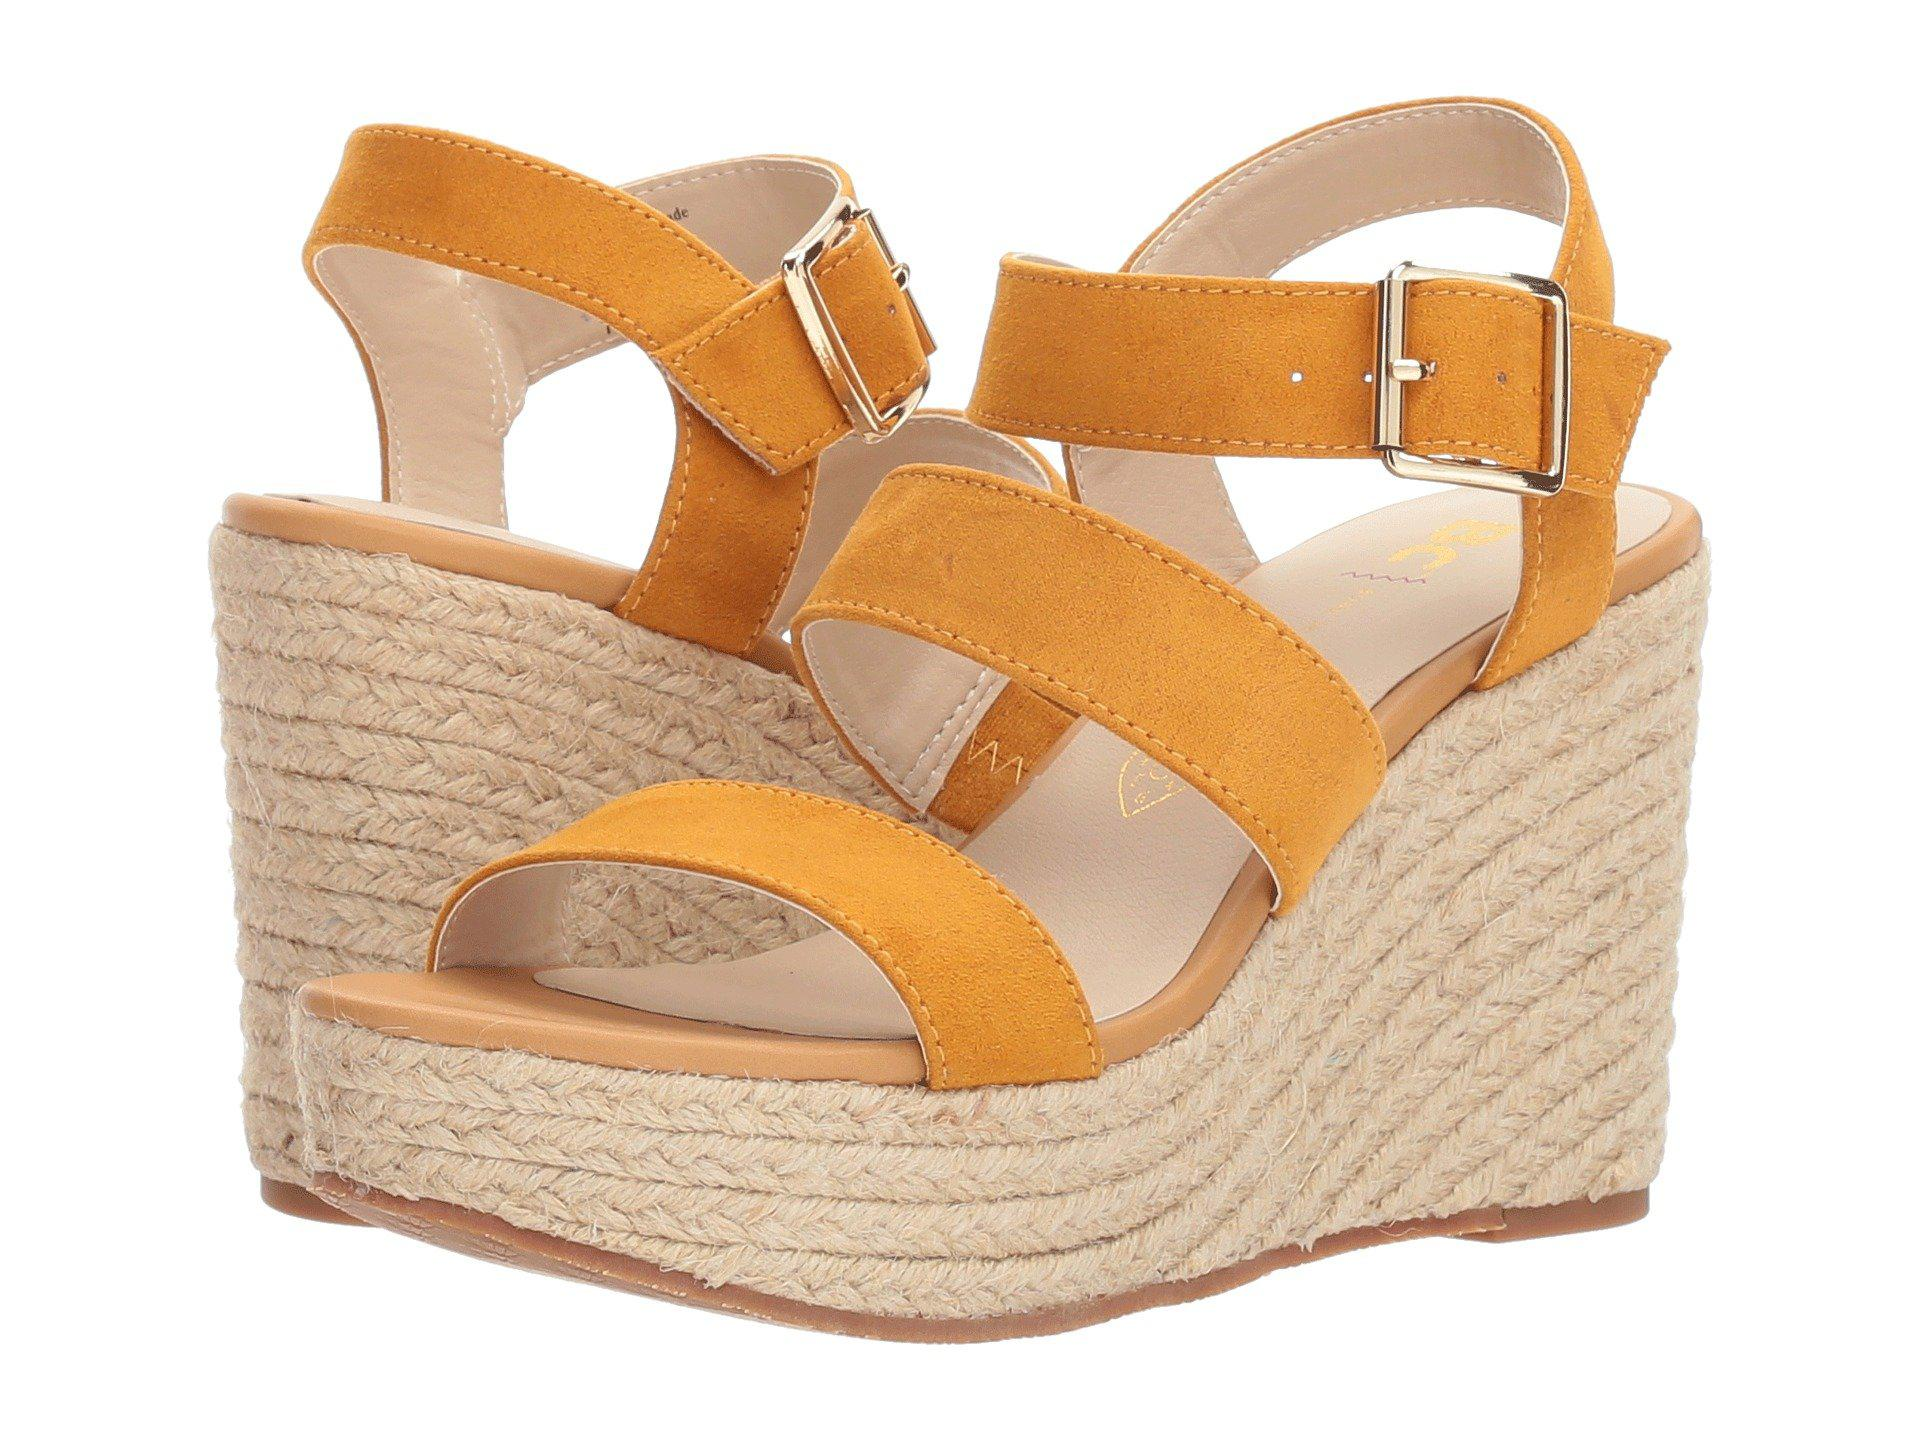 dc96d7ae1d1 Lyst - Seychelles Bc Footwear By Snack Bar (taupe Suede) Women s Sandals